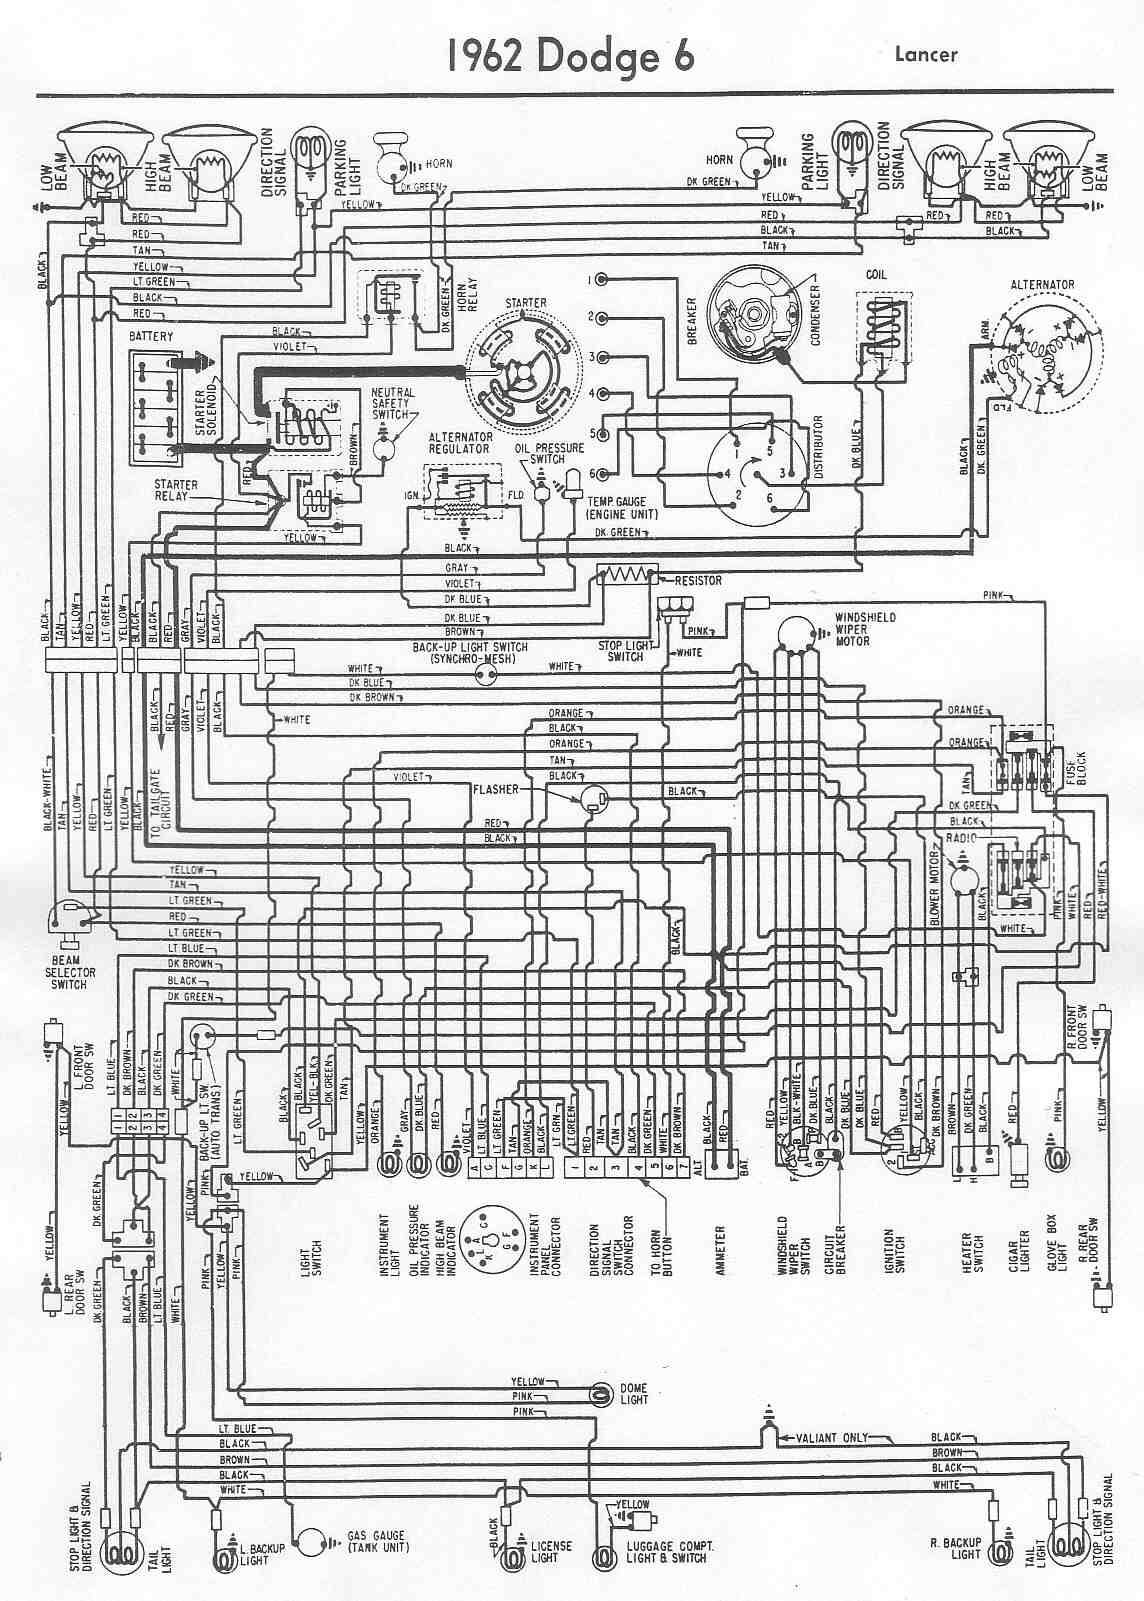 electrical wiring diagram of 1962 dodge 6 lancer?t=1508404780 dodge car manuals, wiring diagrams pdf & fault codes electrical wiring diagram mitsubishi colt at mifinder.co